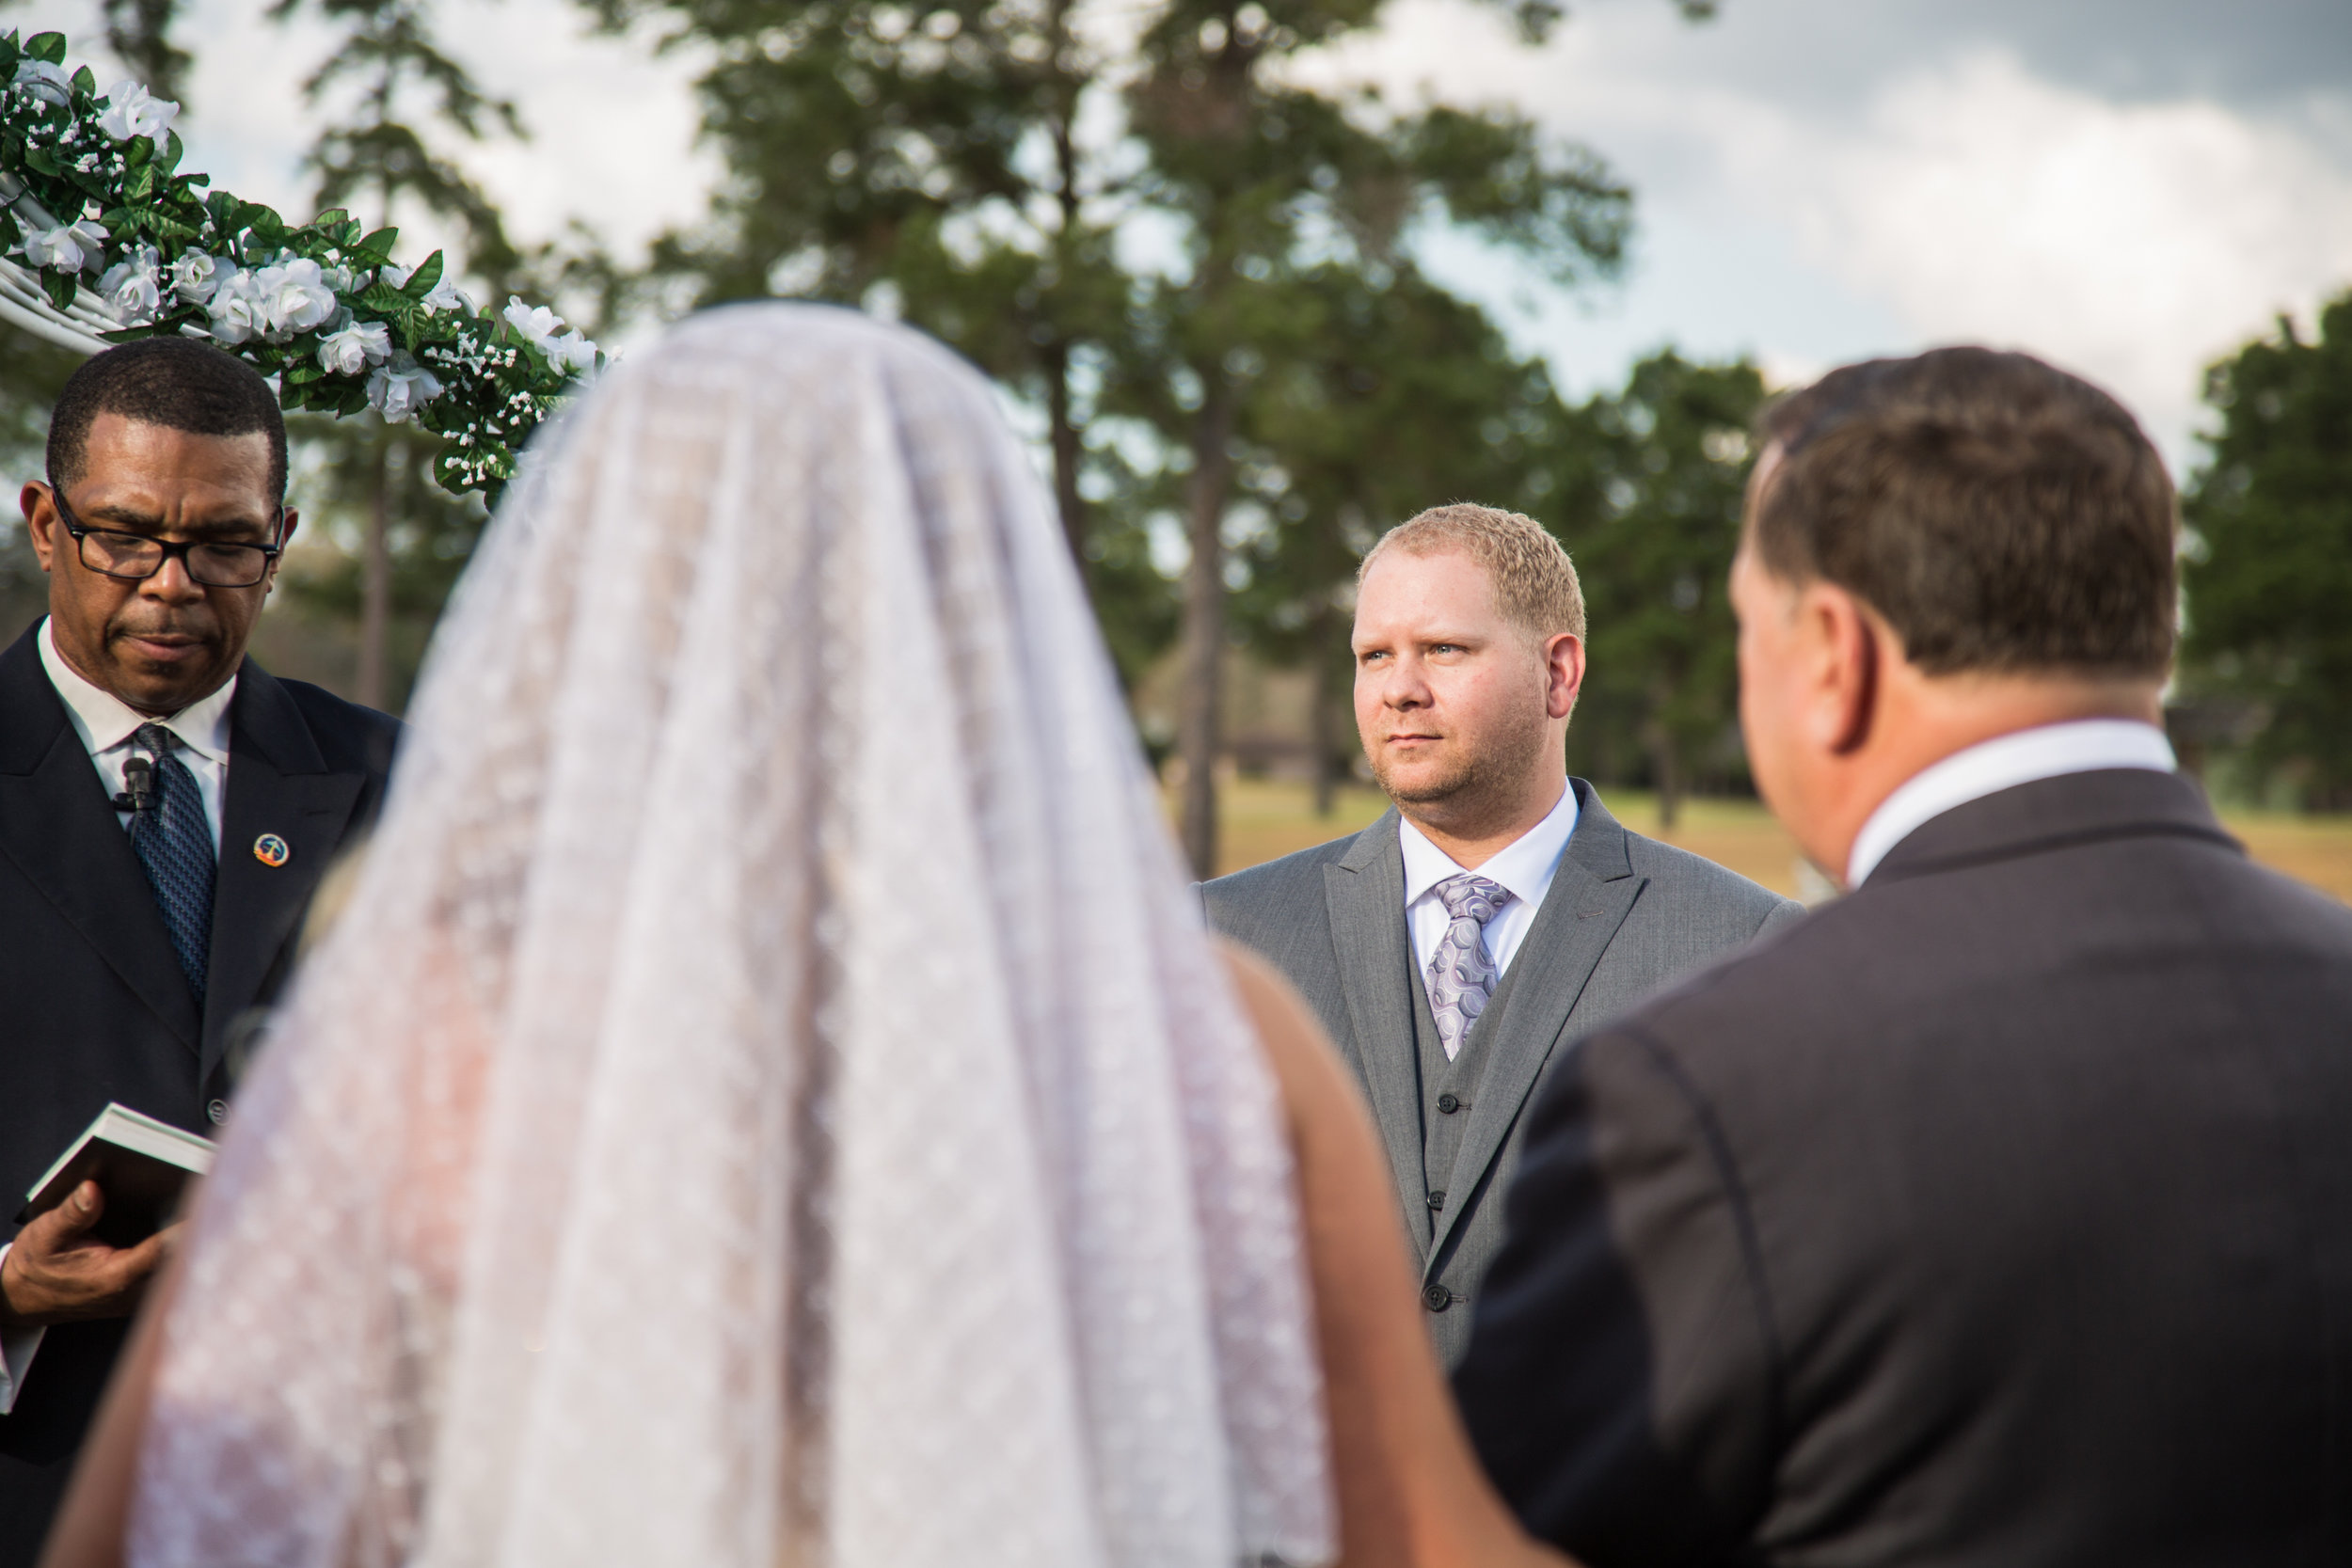 The groom Kennith looks on as bride Jessica stands with her father in wait before the minister asks him to give her away.